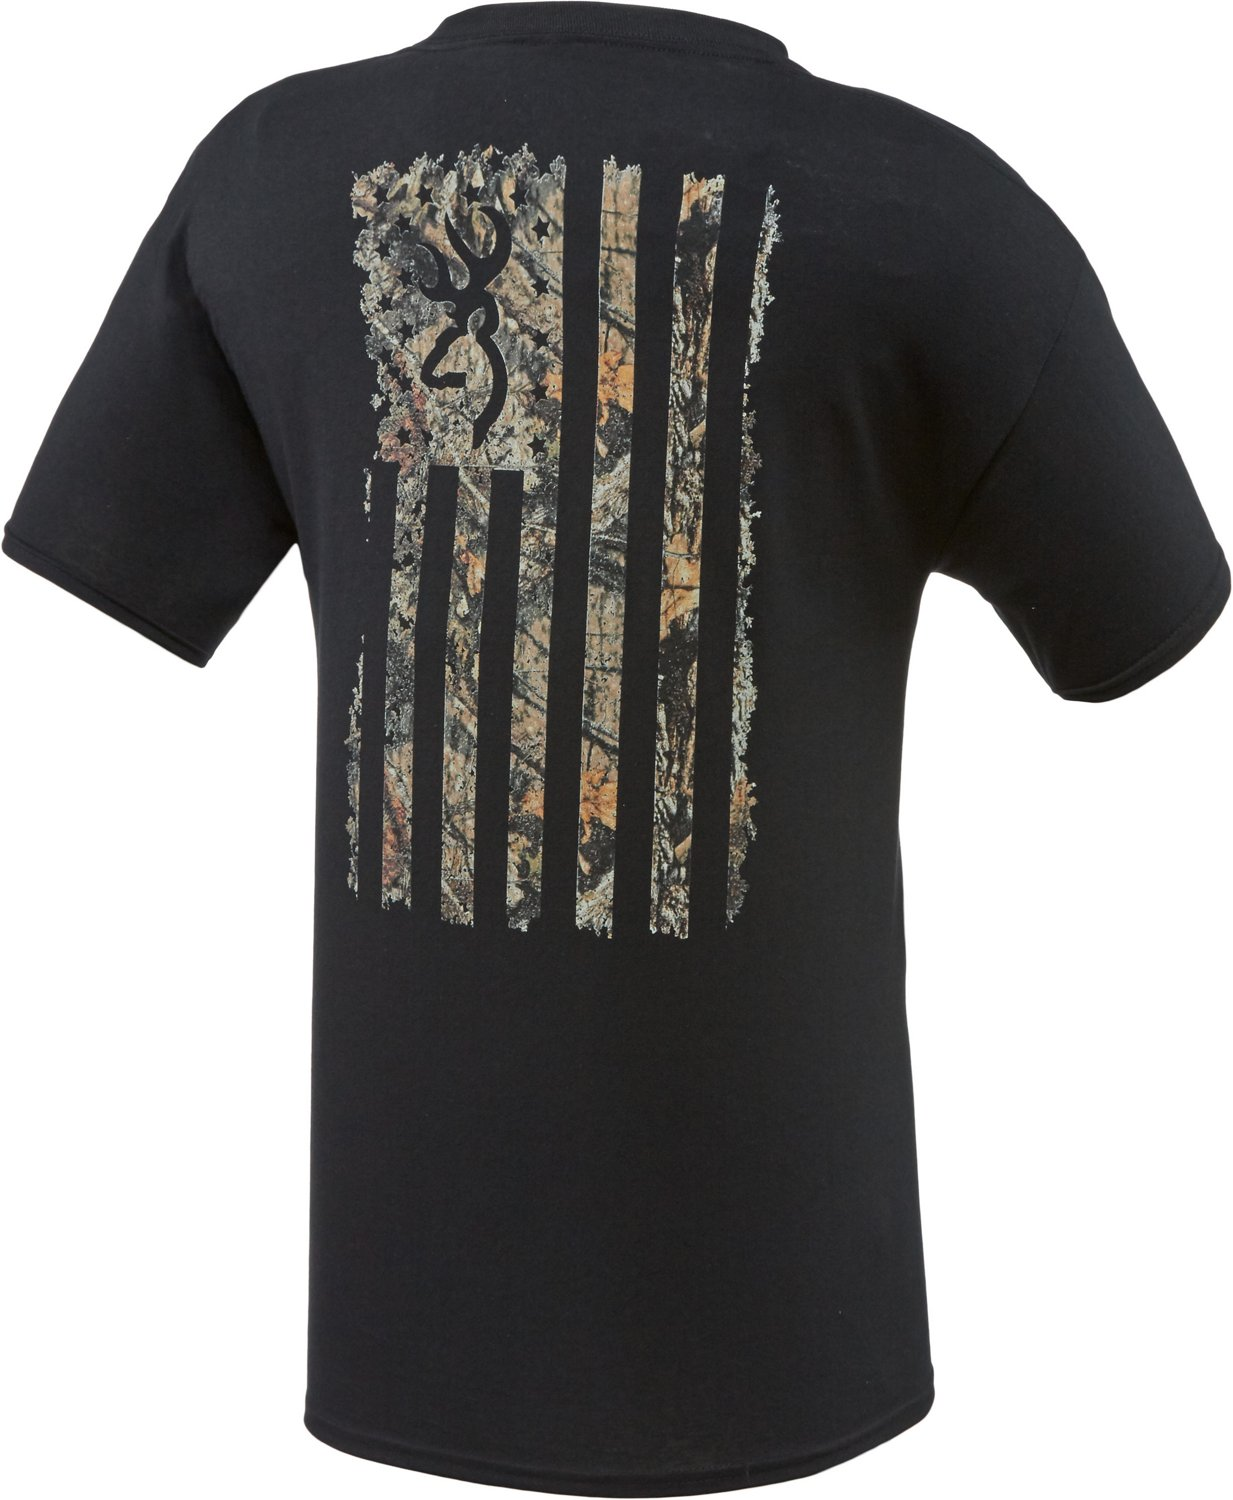 Display product reviews for Browning Men's Camo Country Flag T-shirt